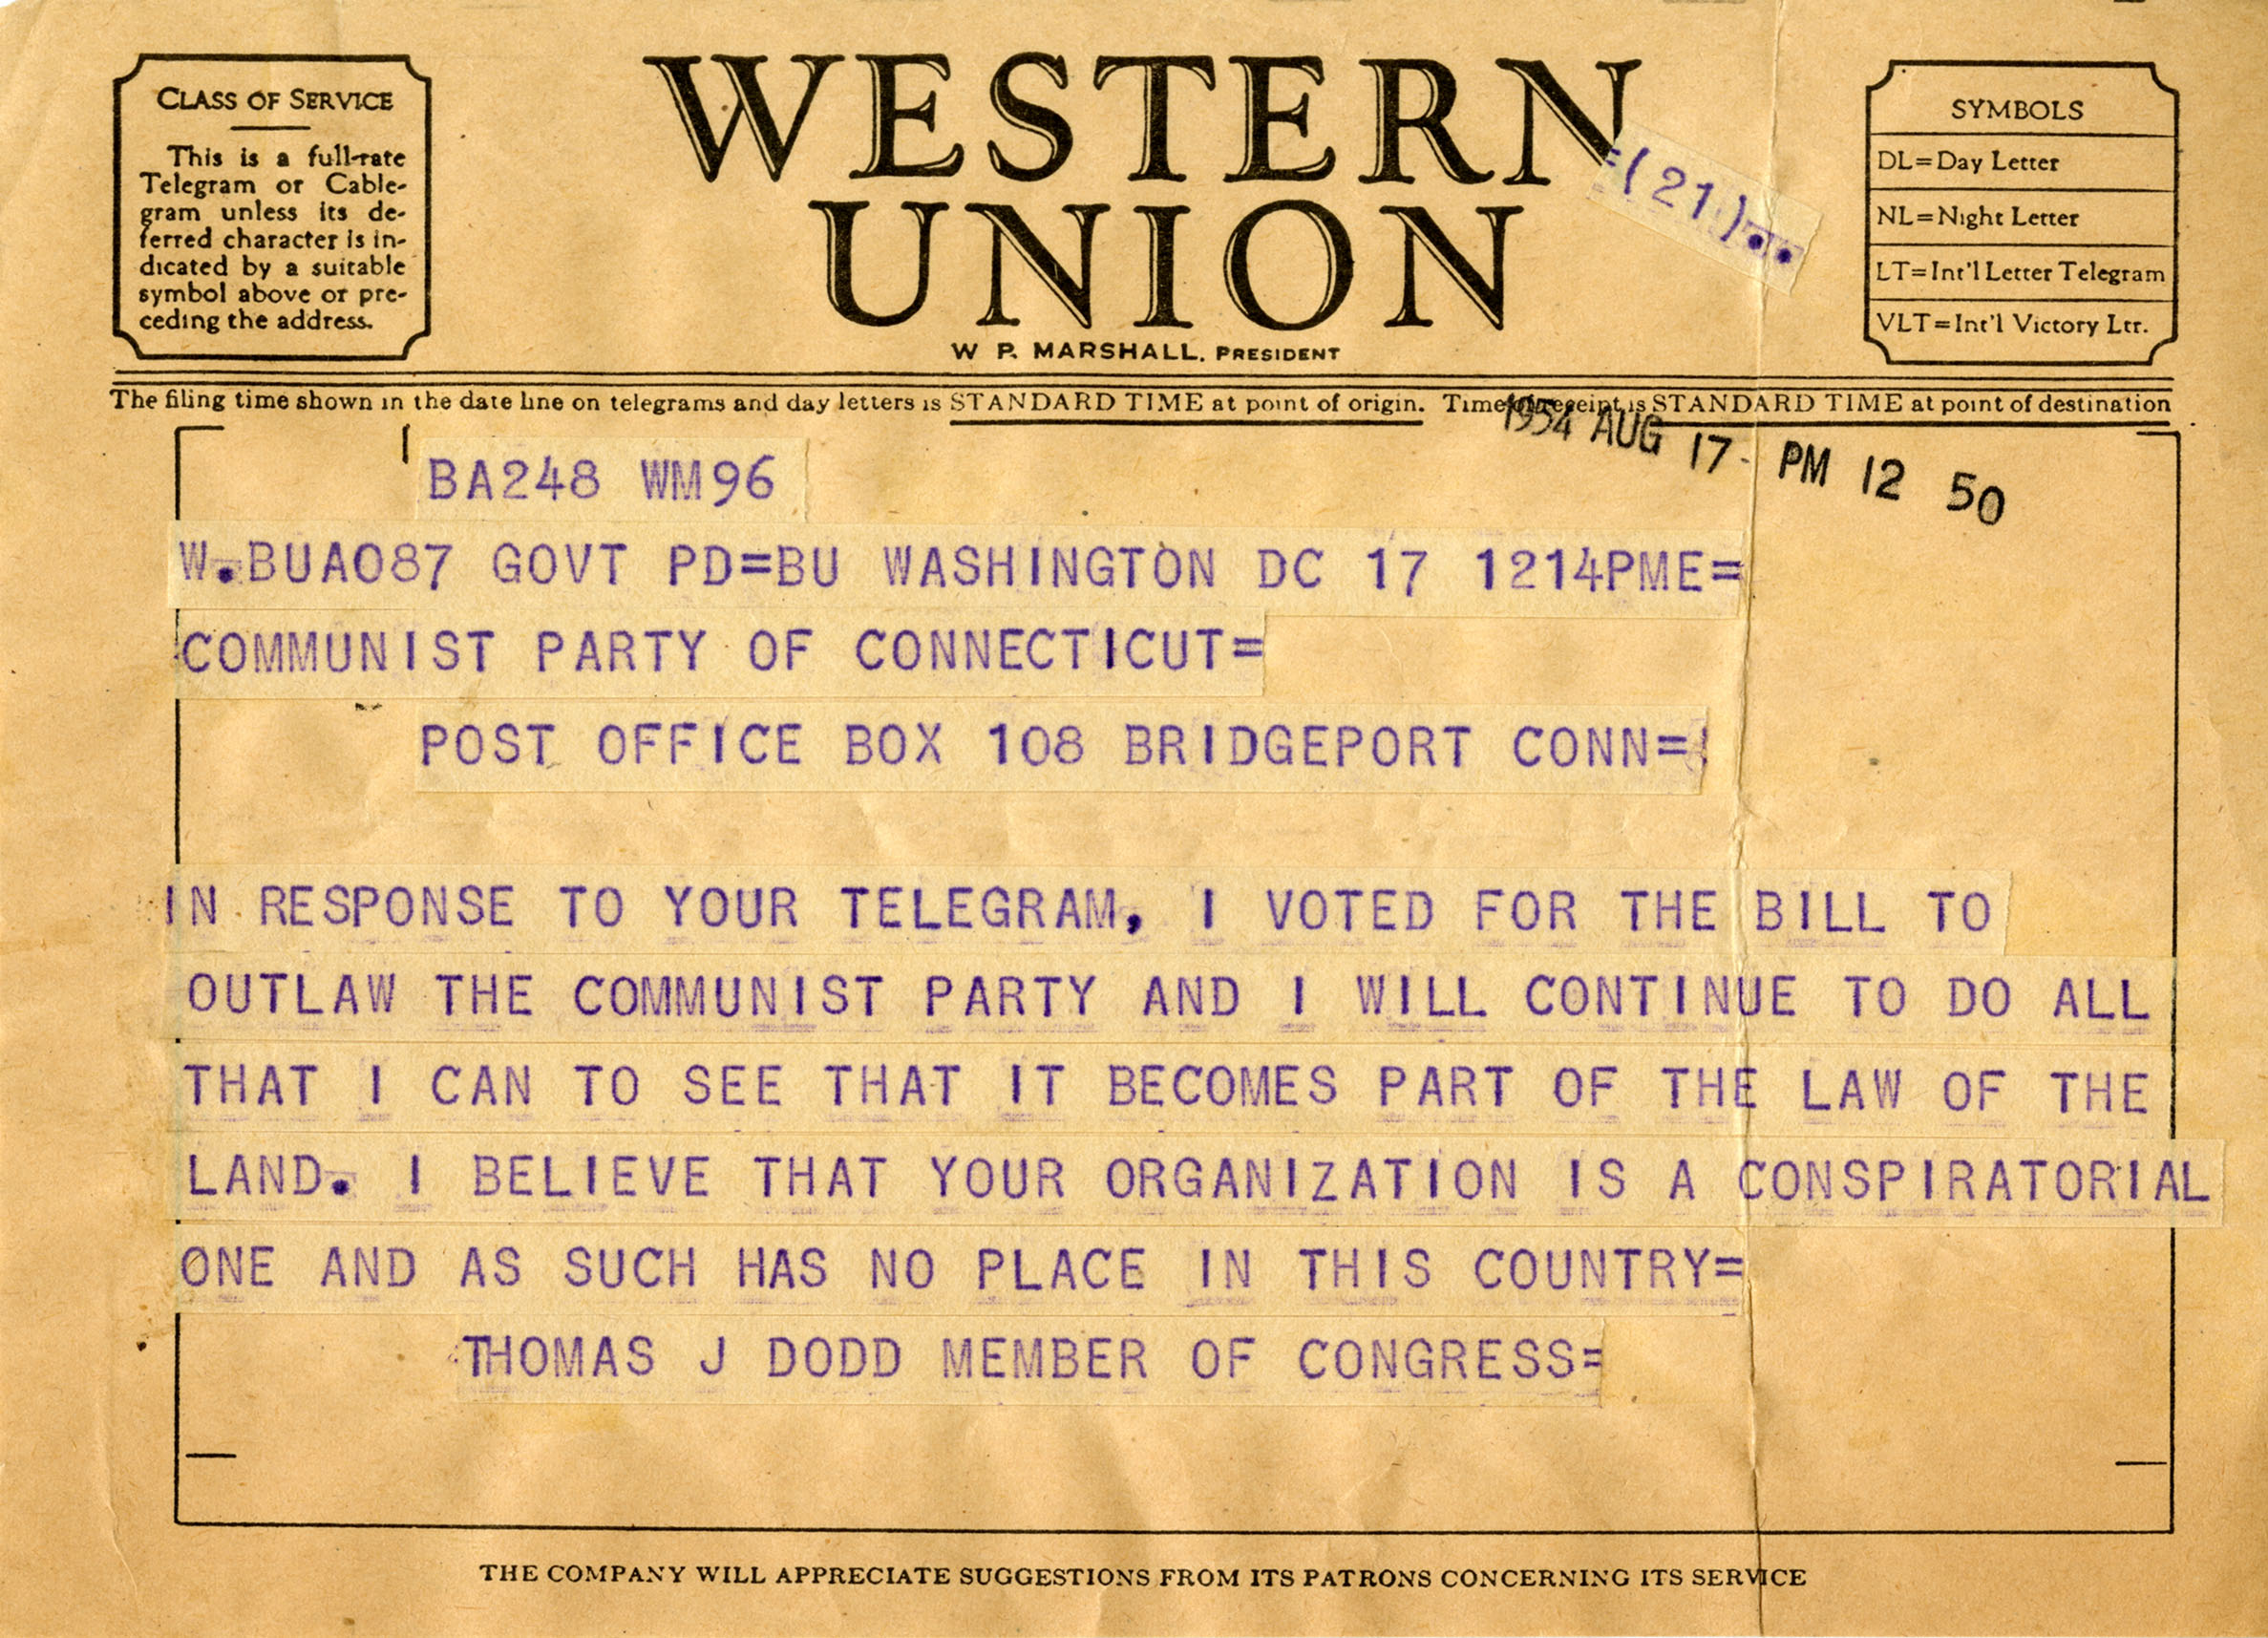 Telegram written August 17, 1954, from Connecticut Senator Thomas J. Dodd to the Communist Party of Connecticut where he affirms that he believes the Party has no place in this country